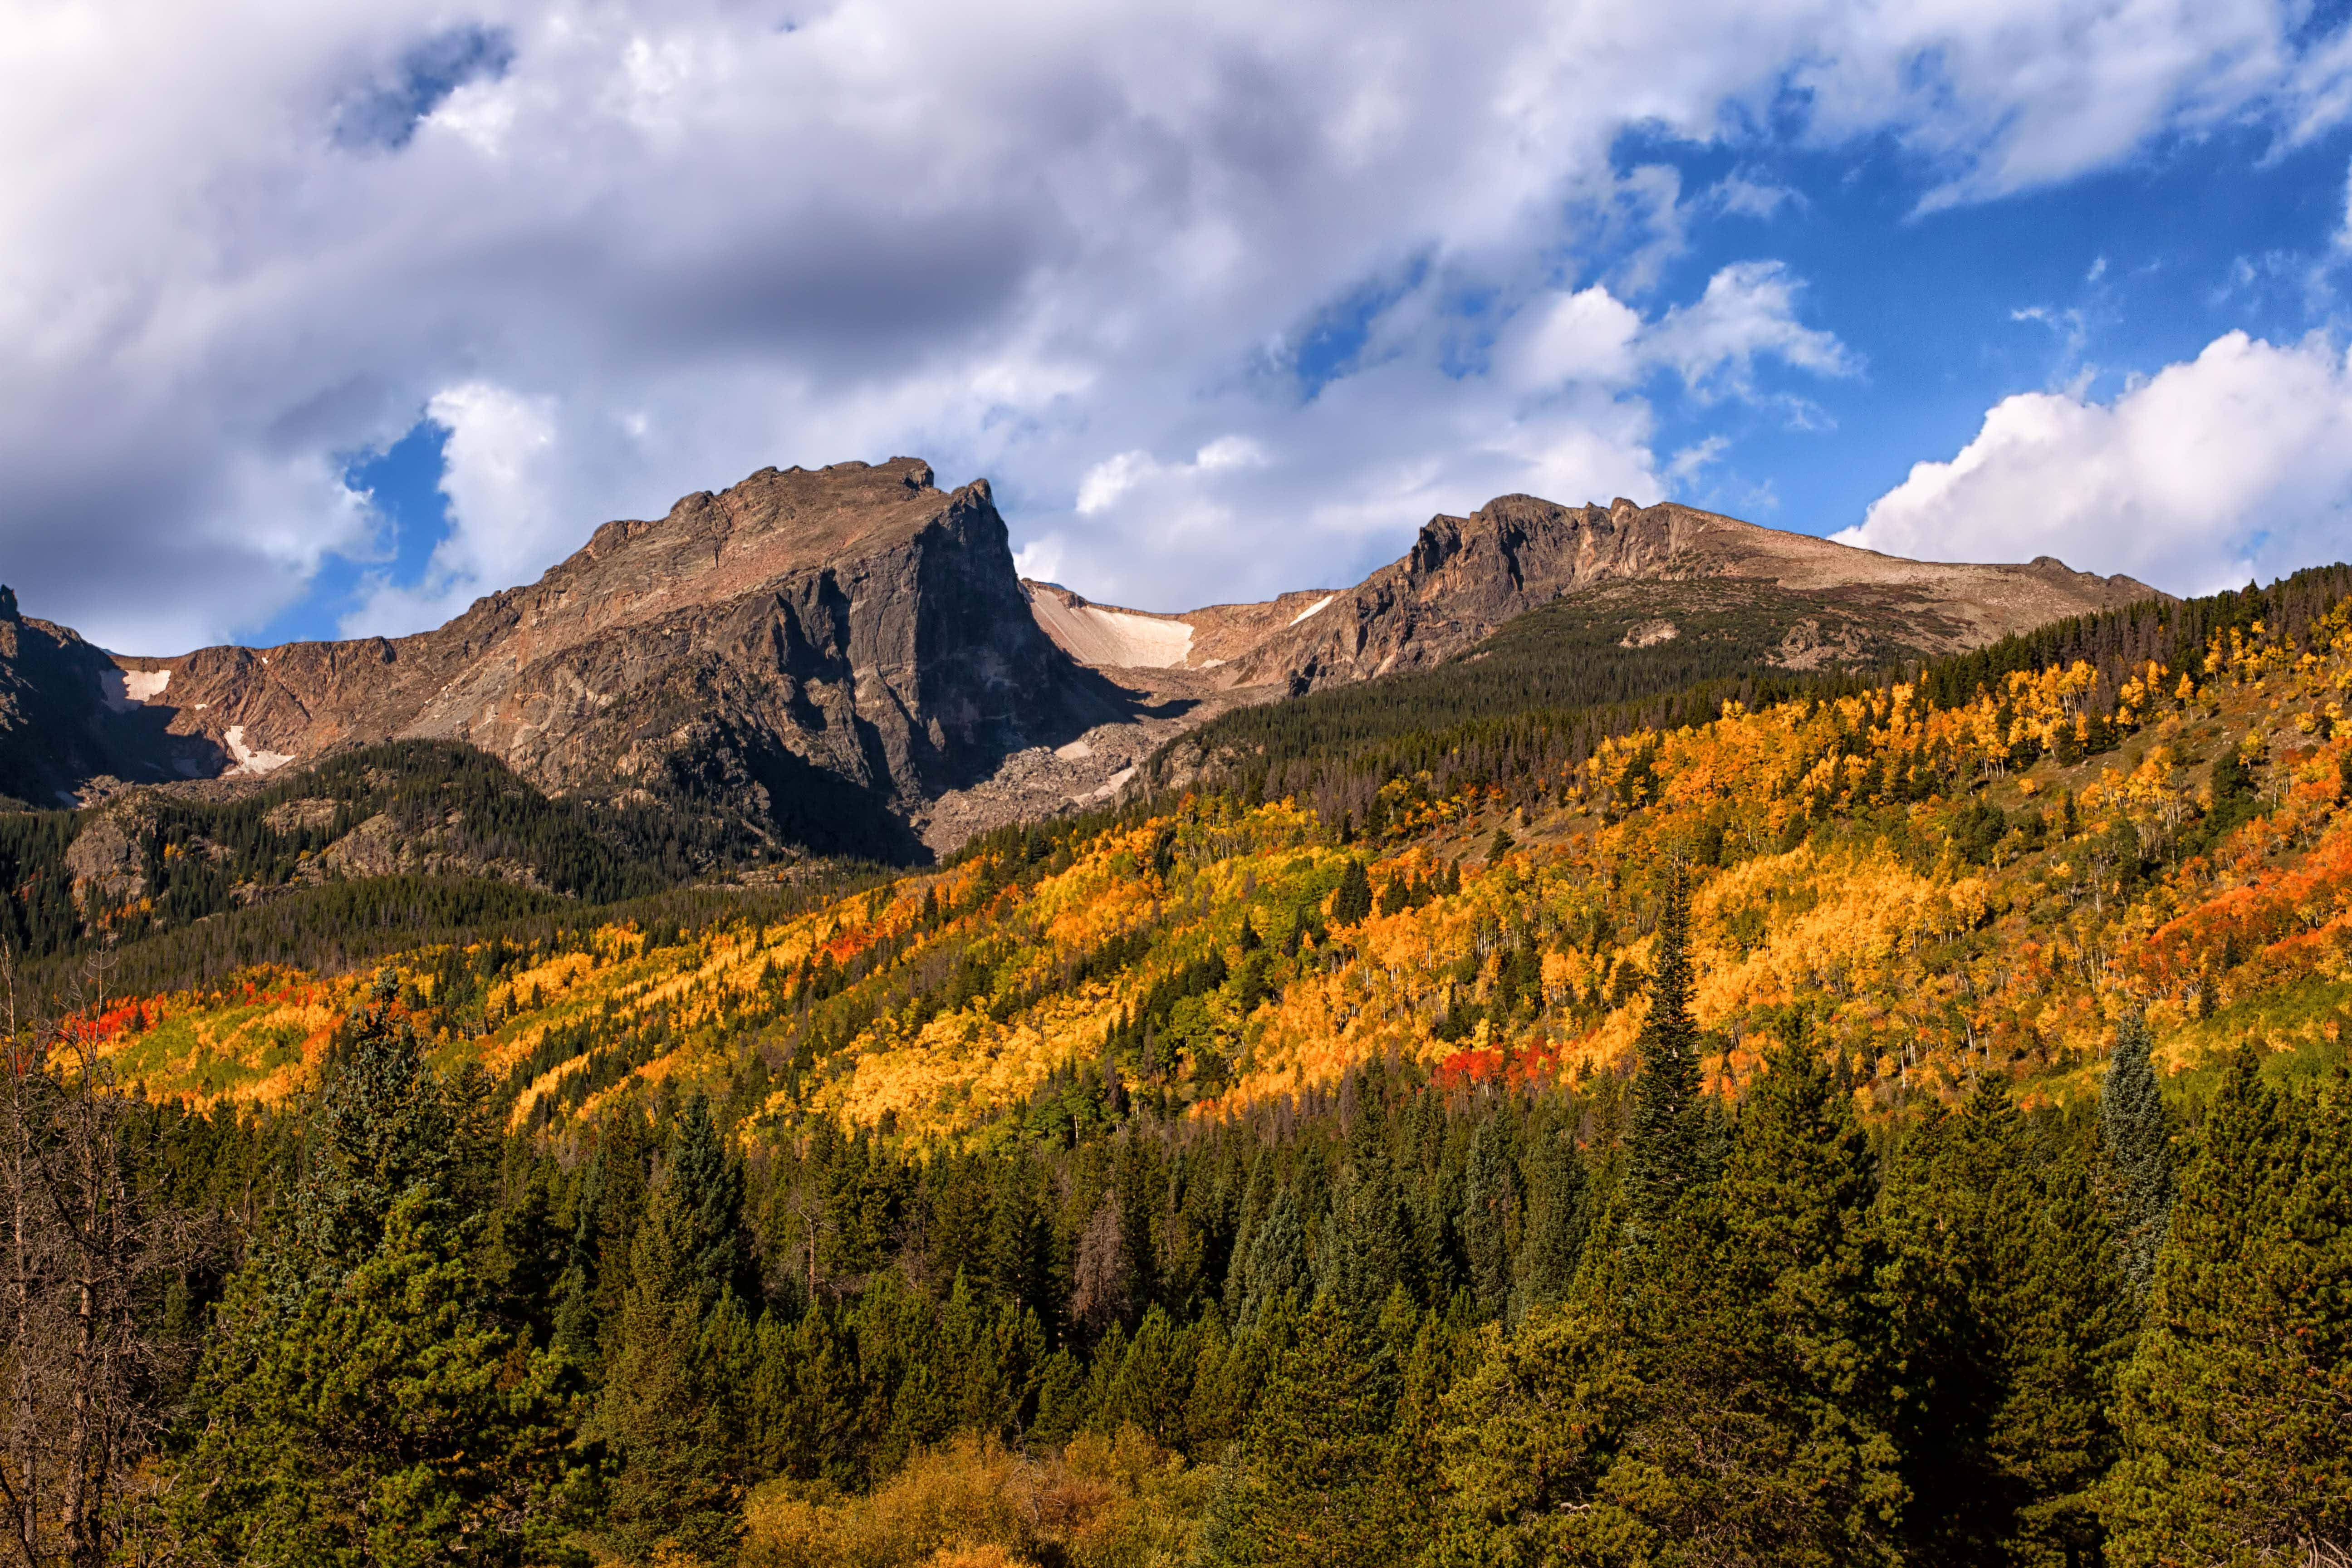 Best of the Rockies: how to choose a national park